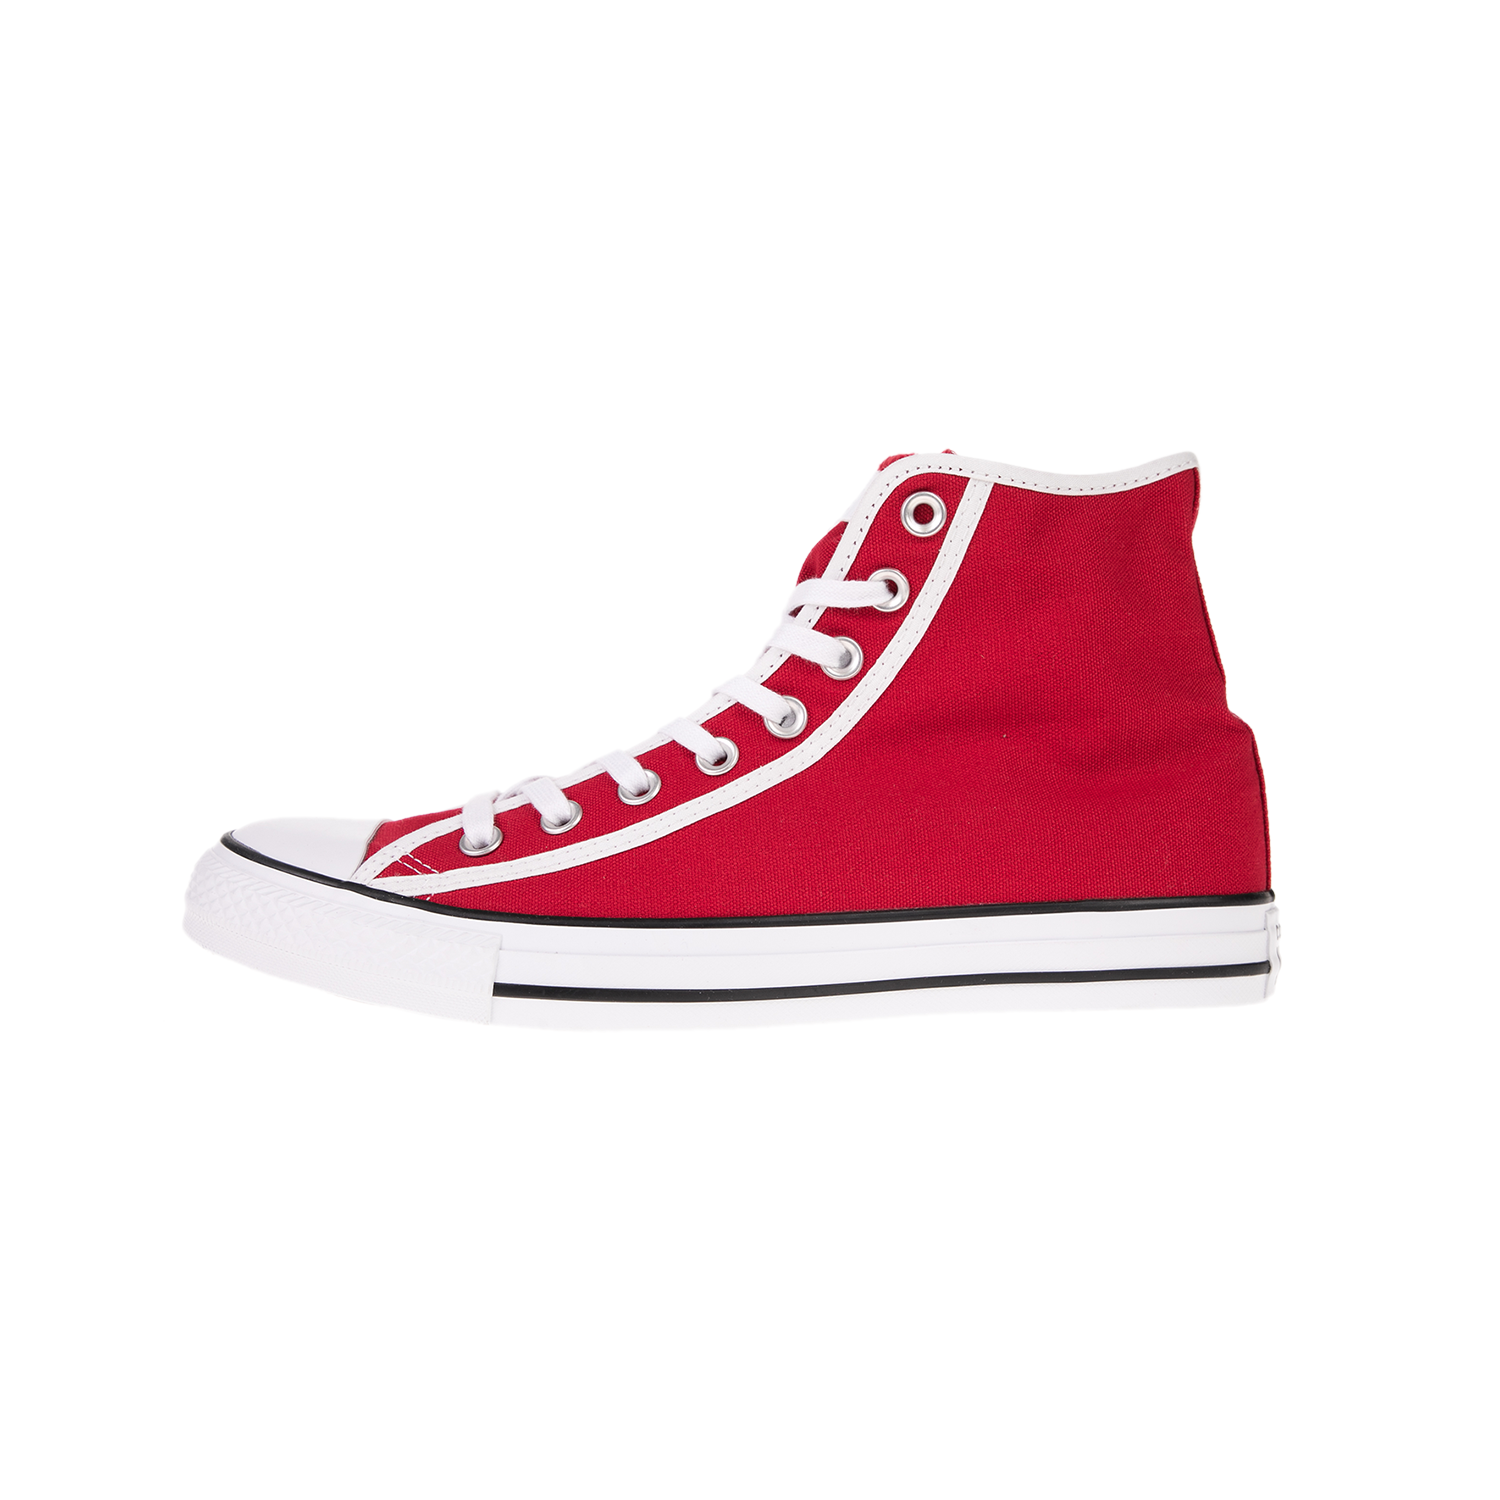 CONVERSE – Unisex sneakers CONVERSE CHUCK TAYLOR ALL STAR HI κόκκινα